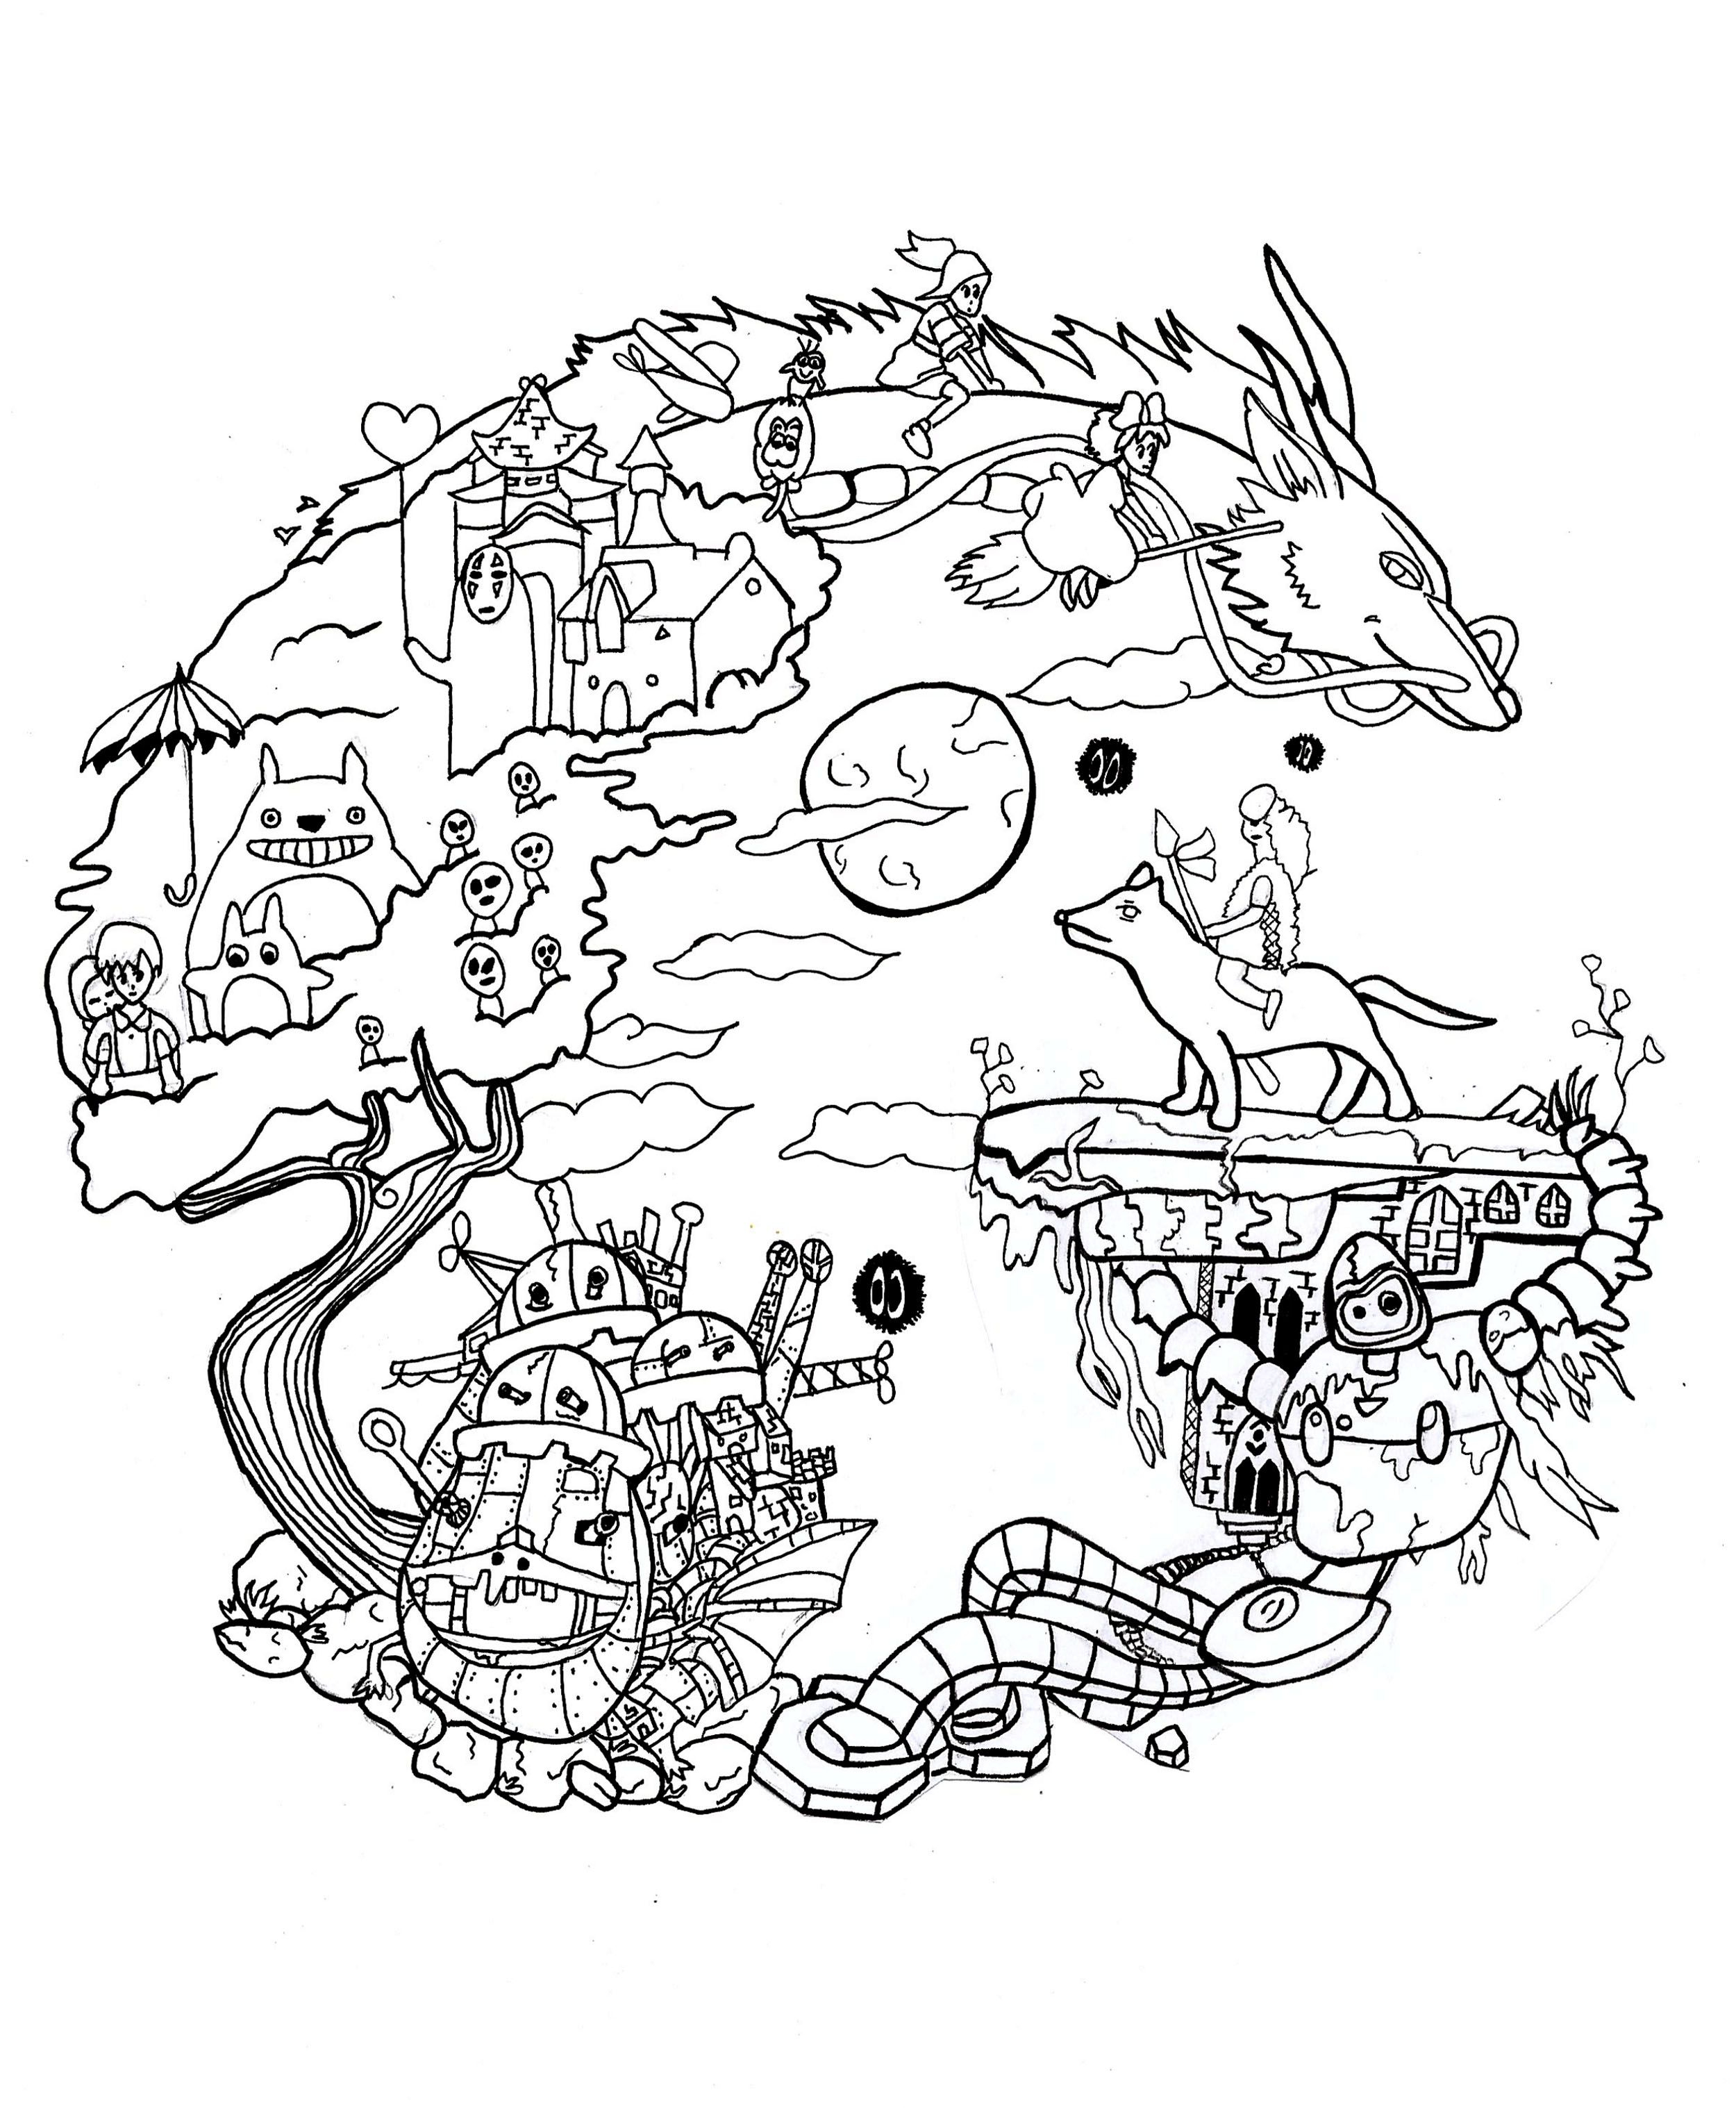 Coloring Page Reproduction Of A Fanart Of Studio Ghibli avec Coloriage Totoro A Imprimer